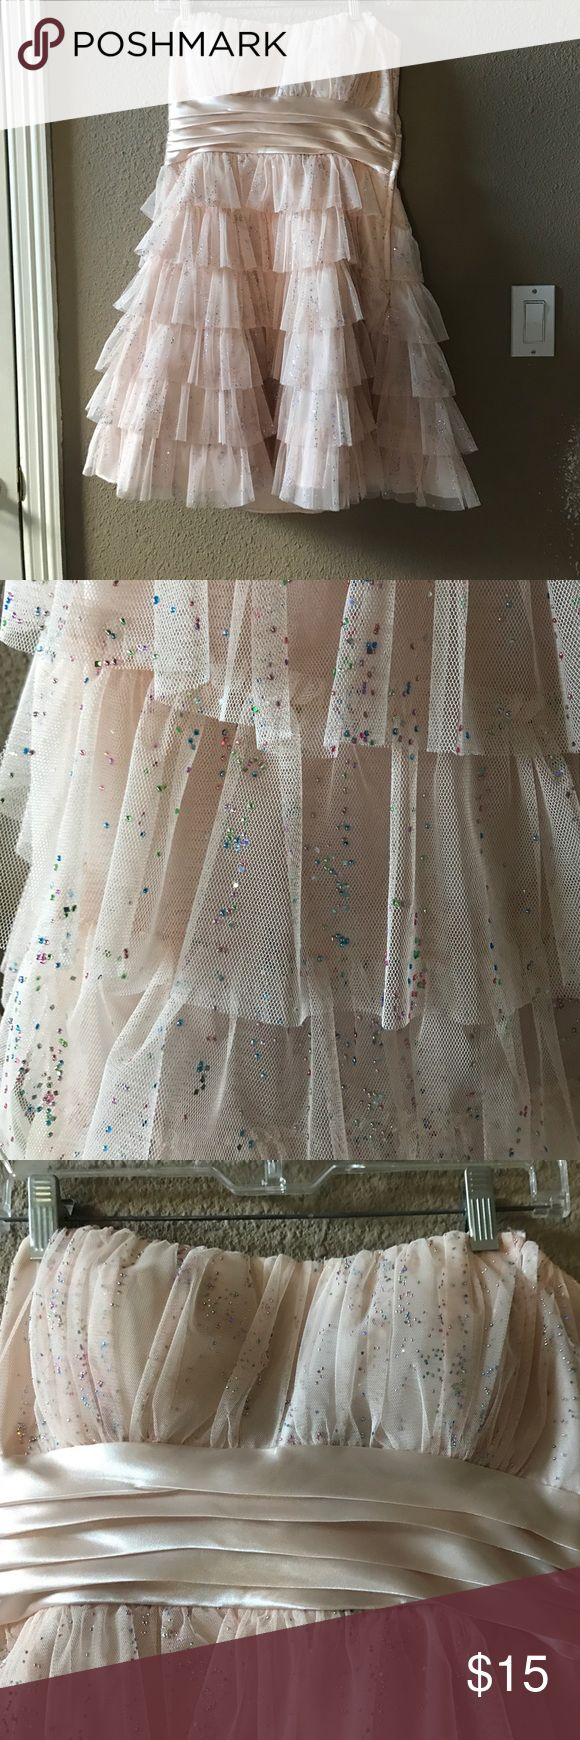 Light Pink Strapless Dress with Jewels Light pink/light peach color with mini silver, pink, blue, and green jewels all over. Zipper on the left side.  Size 13/14 Dresses Strapless